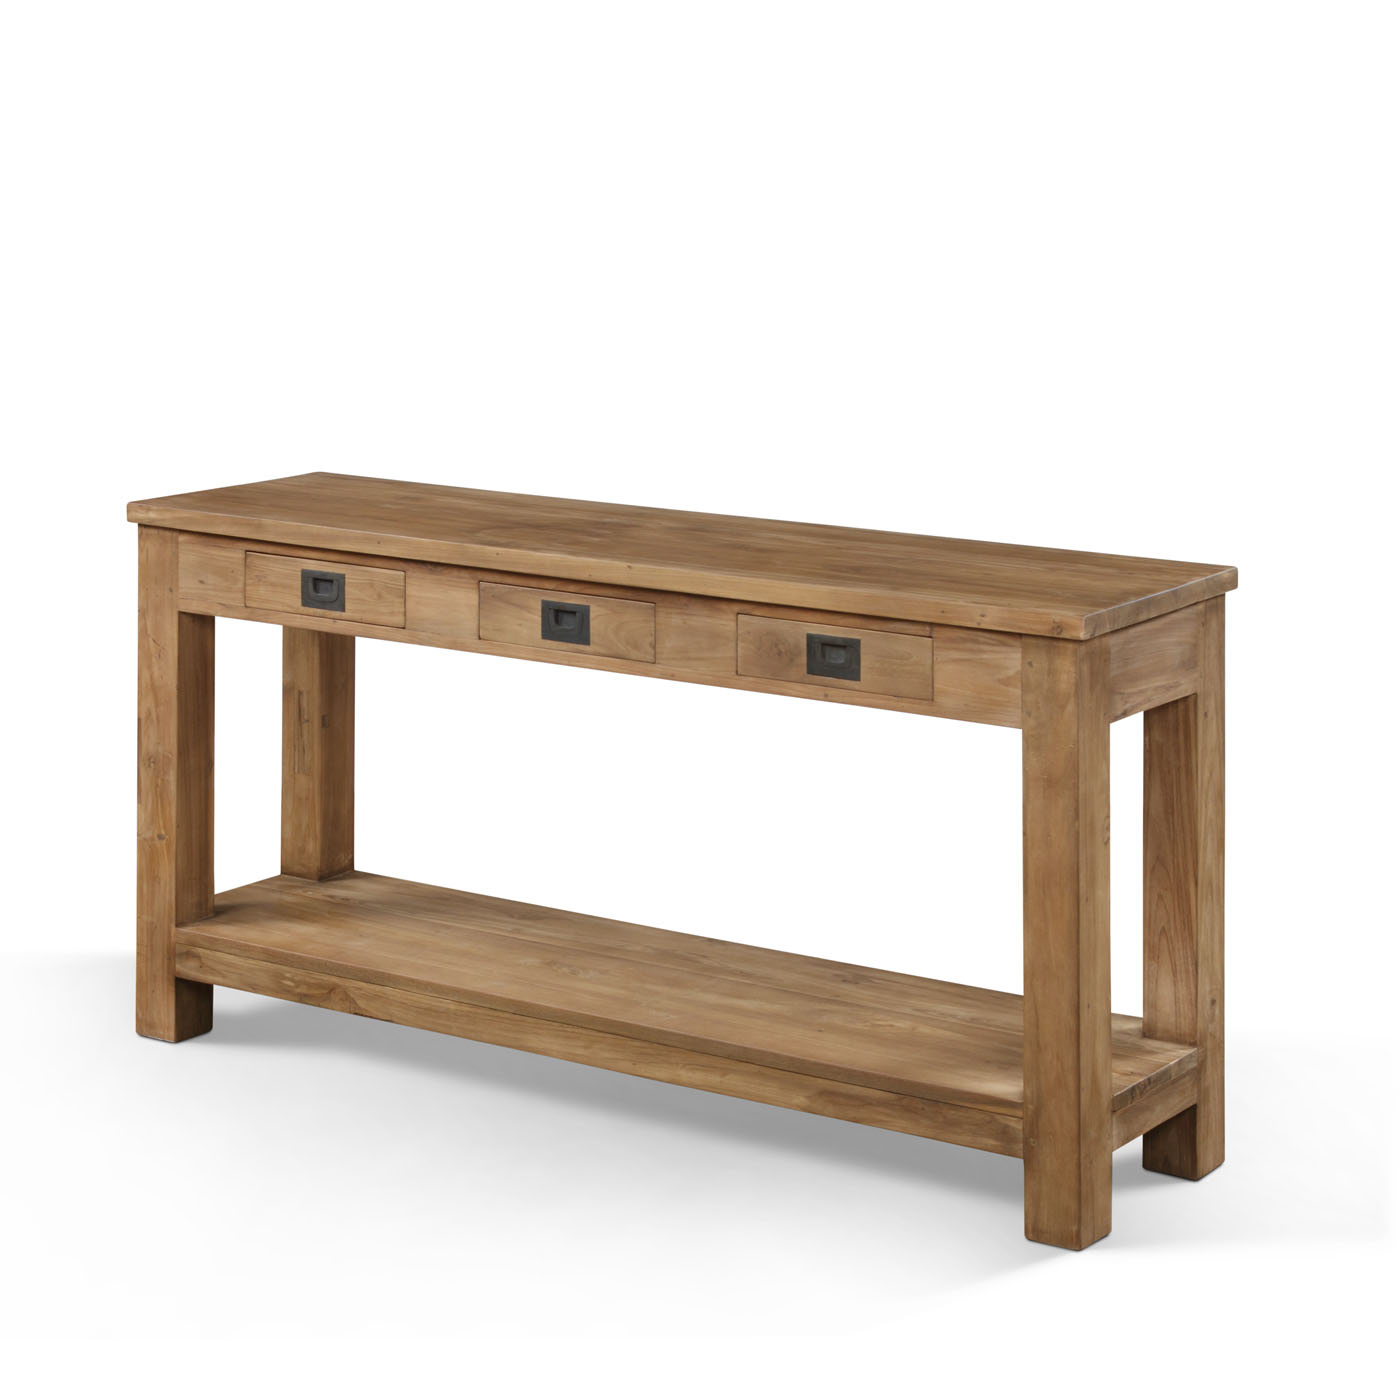 Long And Narrow Oak Console Table With Storage And Drawer With Metal With Echelon Console Tables (View 12 of 30)